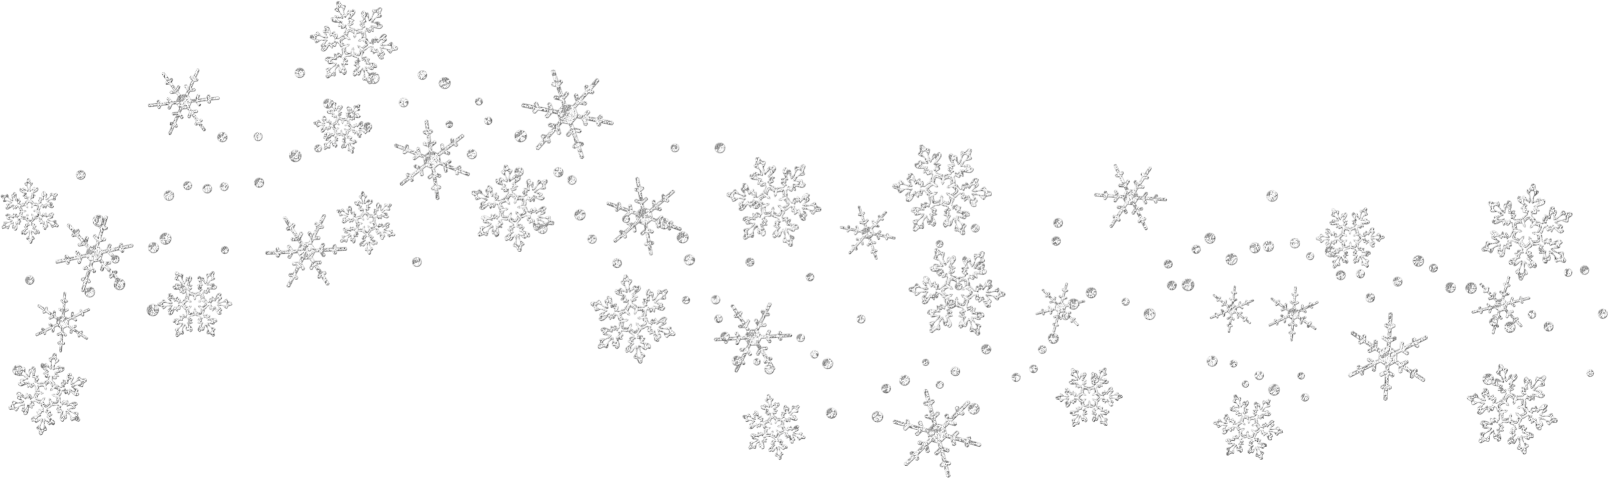 collection of high. Winter clipart transparent background